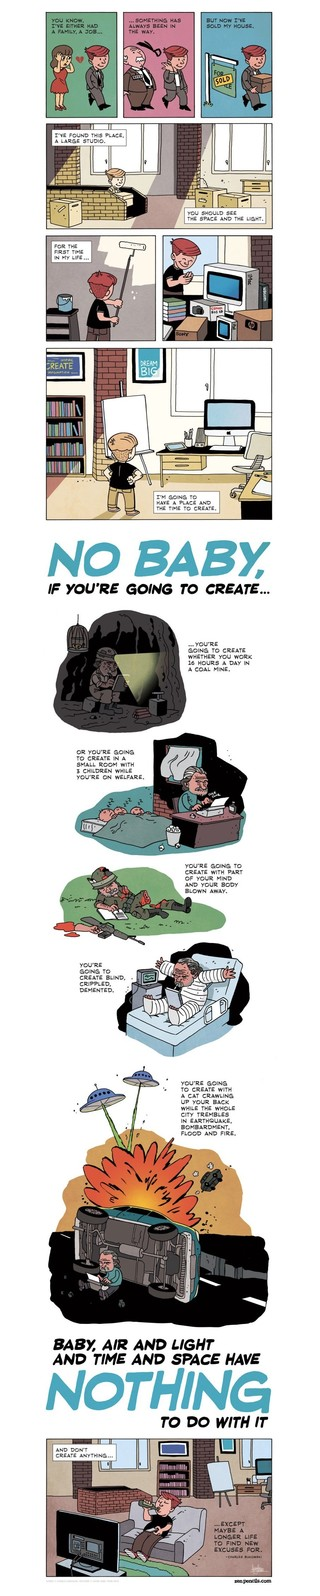 Tekst: Charles Bukowski - air and light and time and space (1992). Tekening: Gavin Aung Than van Zen Pencils